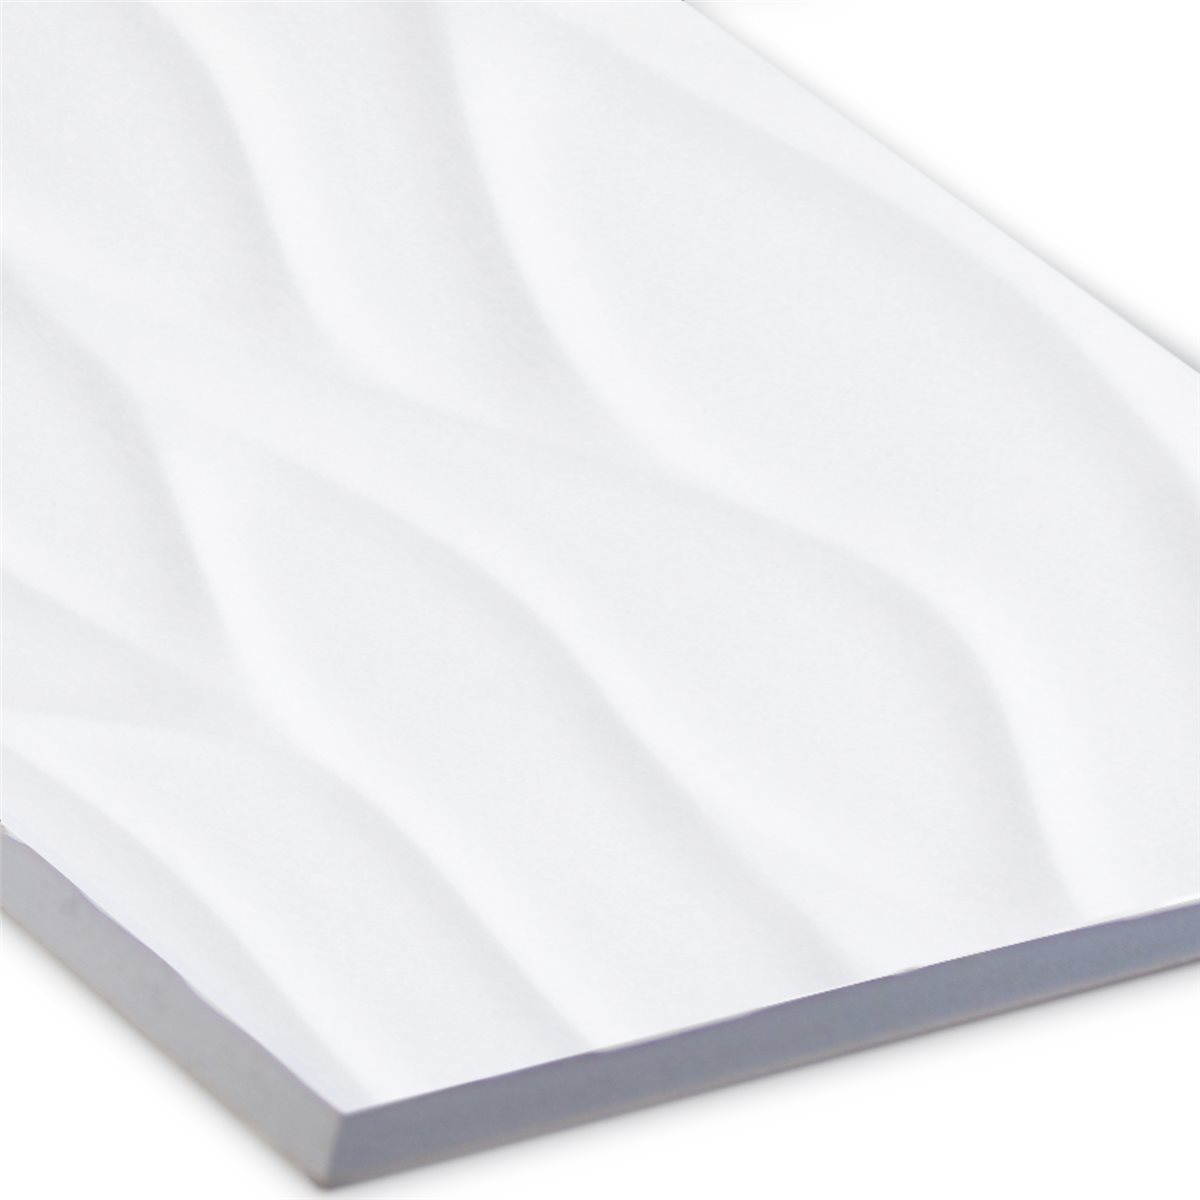 Carrelage mural vague blanc mat 30x90cm lz69283 for Carrelage mural blanc